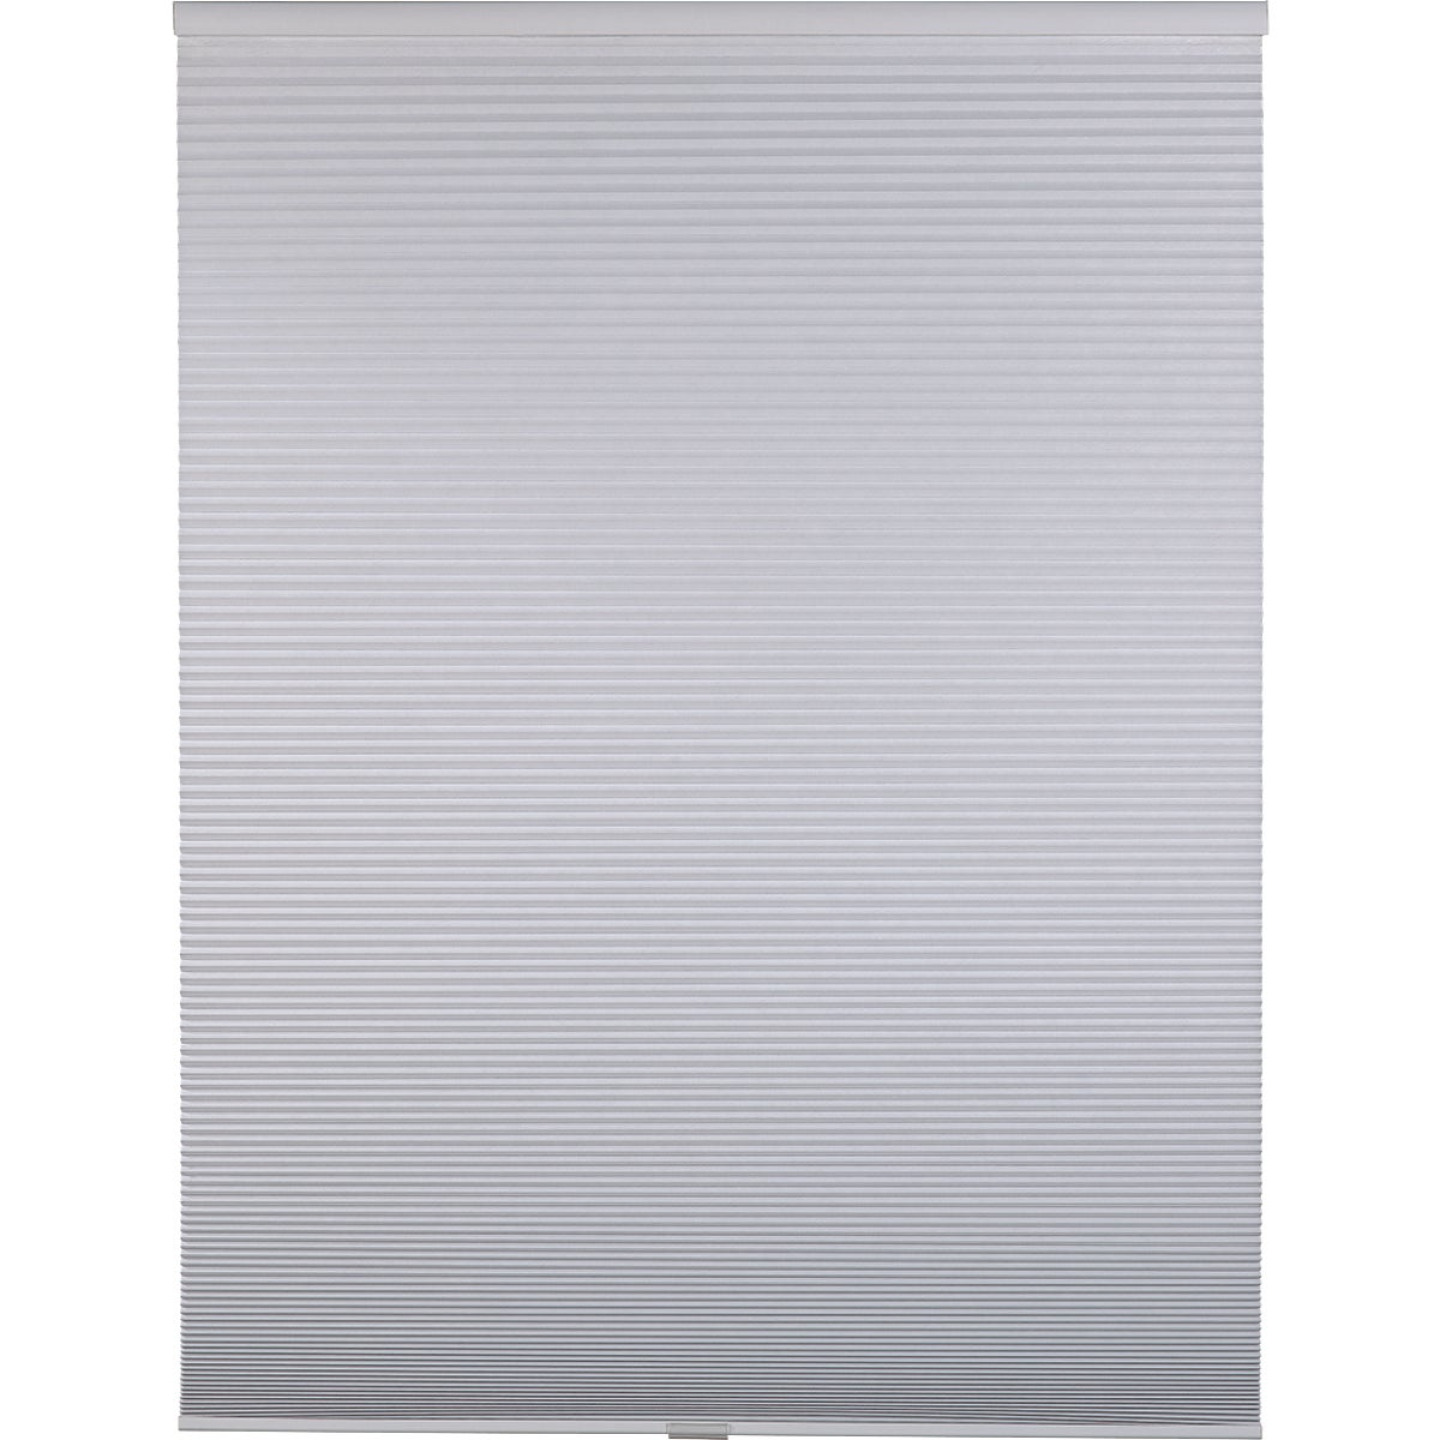 Home Impressions 1 In. Room Darkening Cellular White 31 In. x 72 In. Cordless Shade Image 1